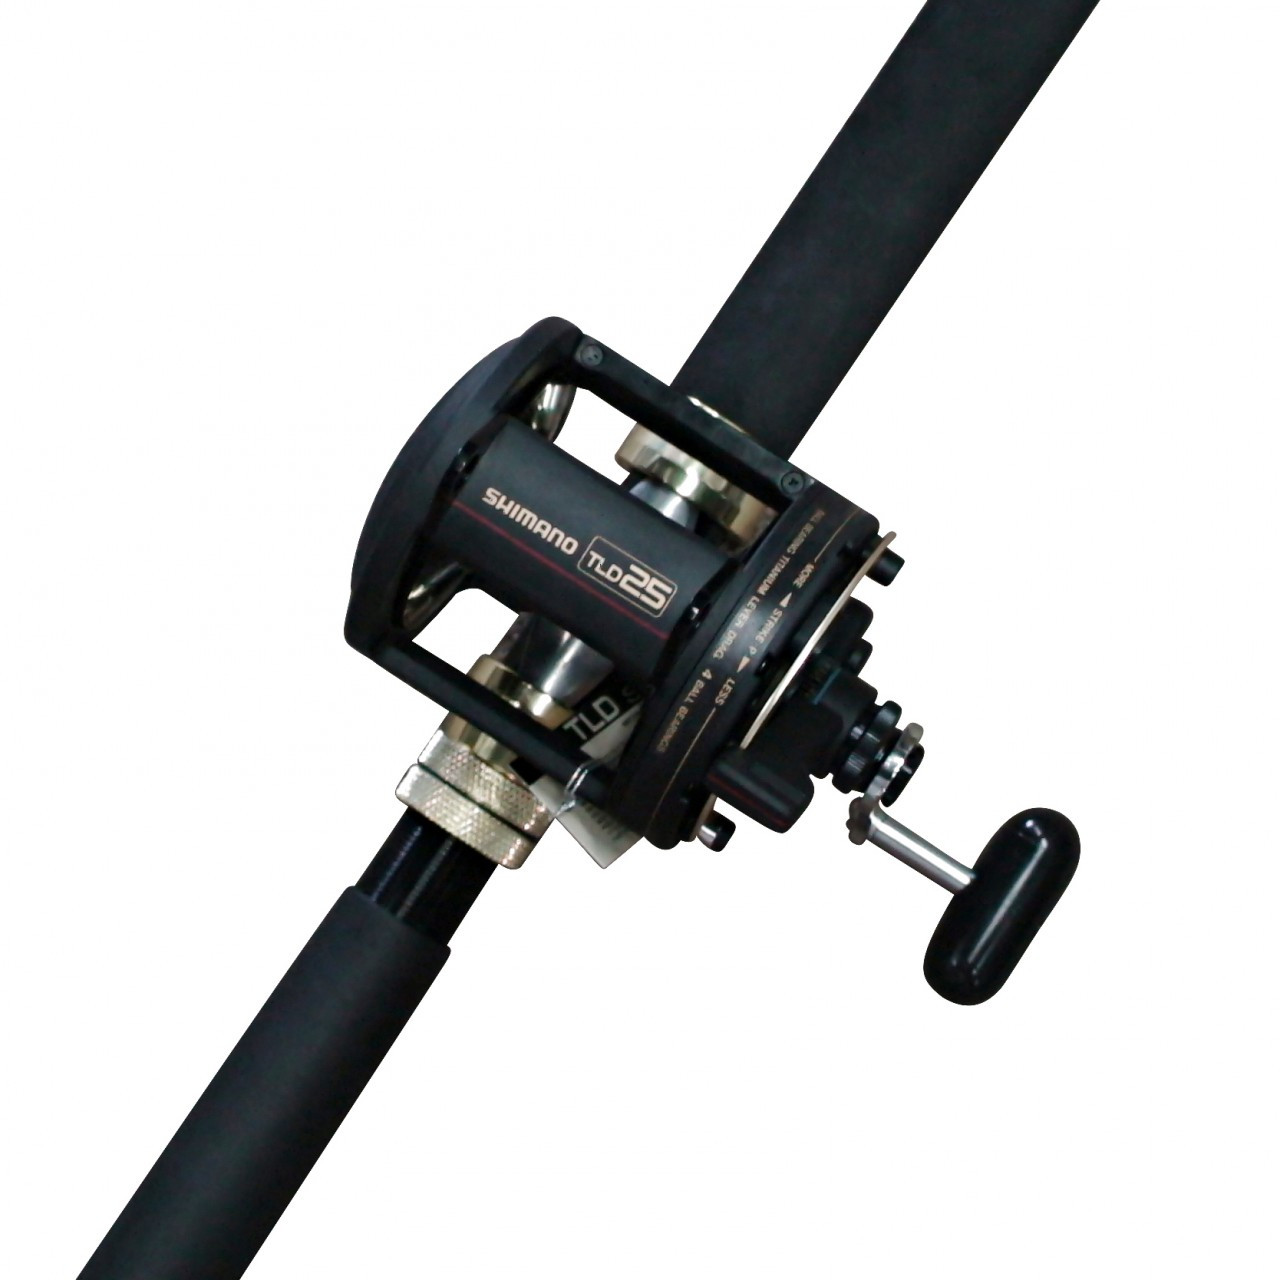 Shimano tld 25 fishing reel with shimano 15kg backbone rod for Ebay fishing reels shimano